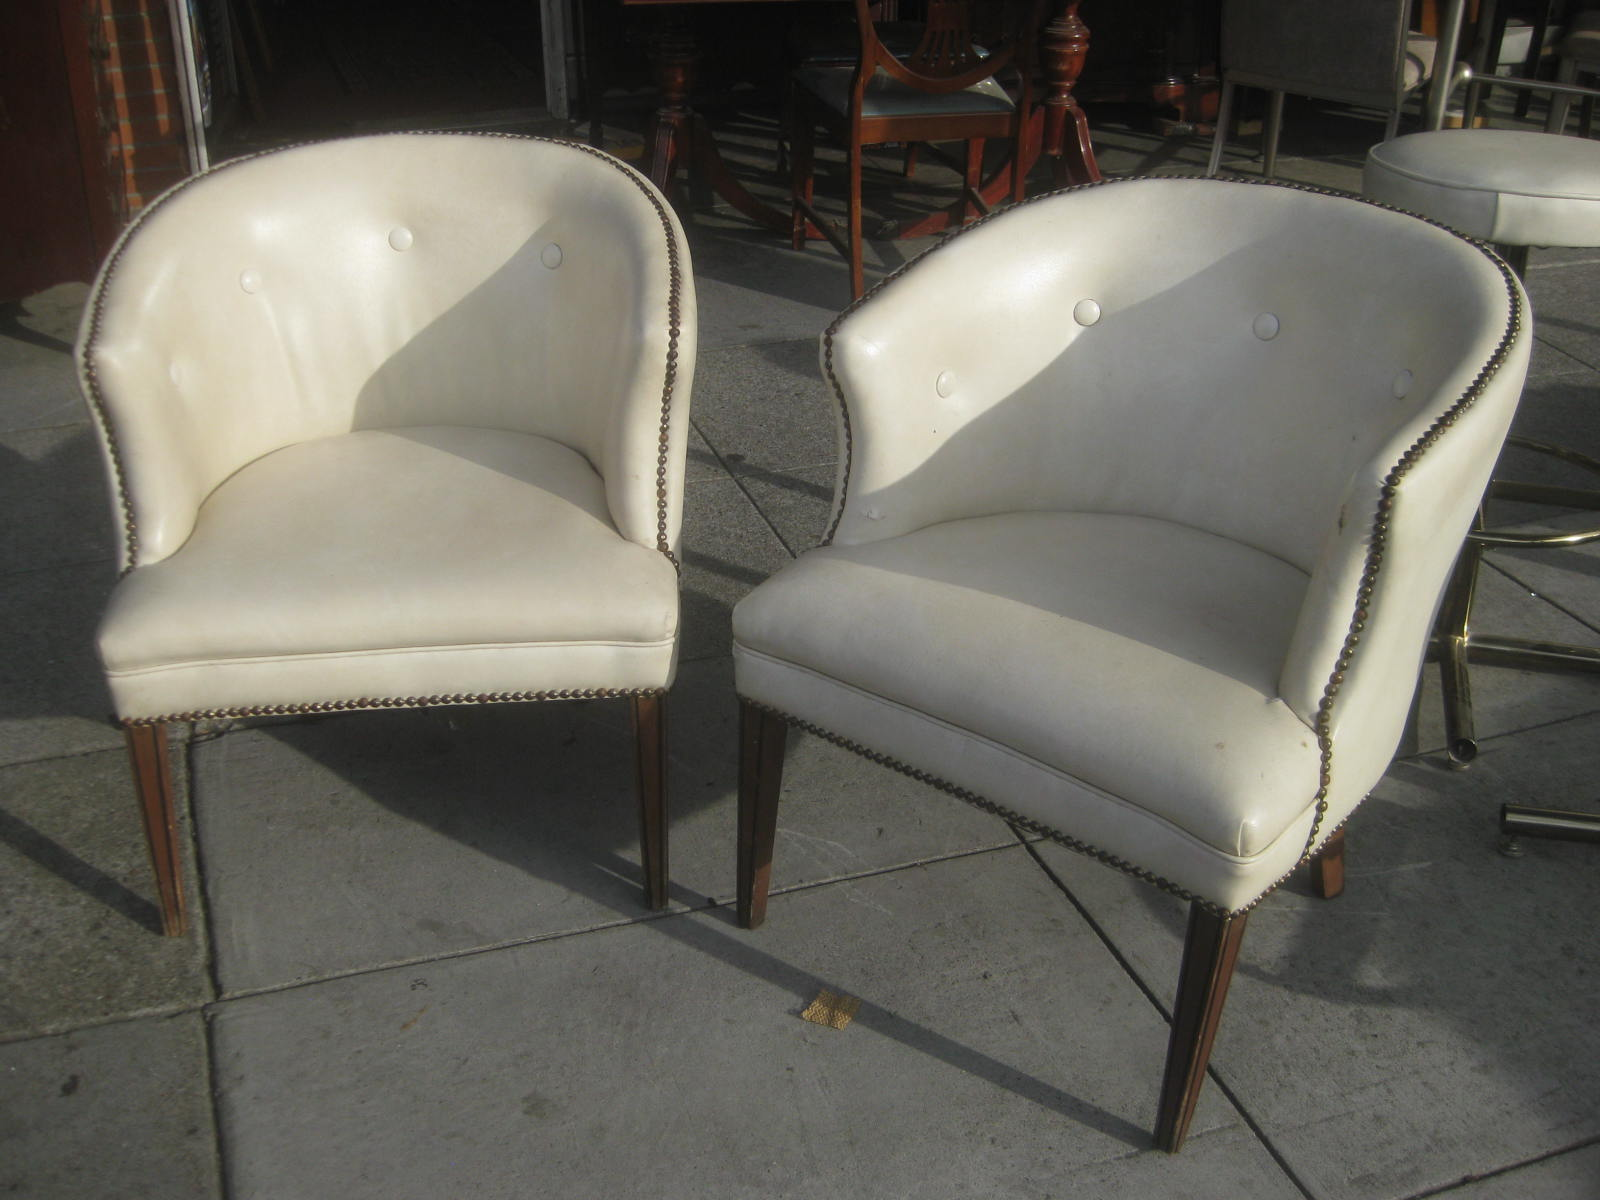 UHURU FURNITURE & COLLECTIBLES: SOLD - White Leather Bucket Chairs ...